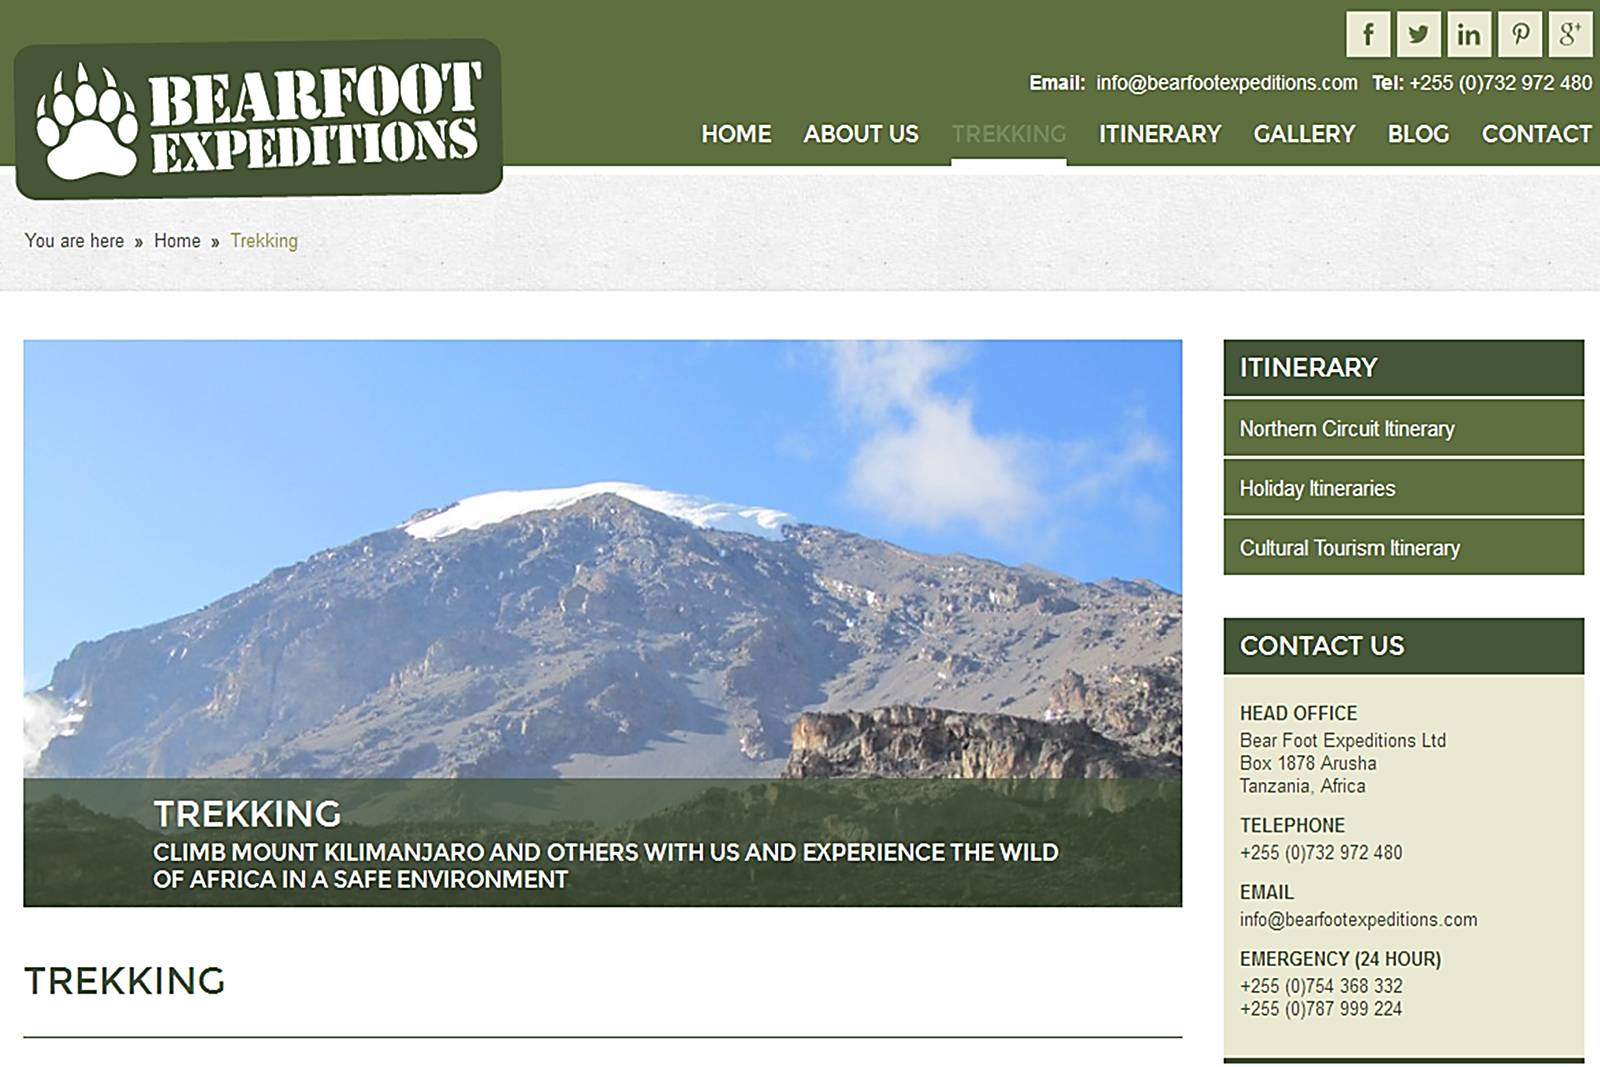 website page with mountain